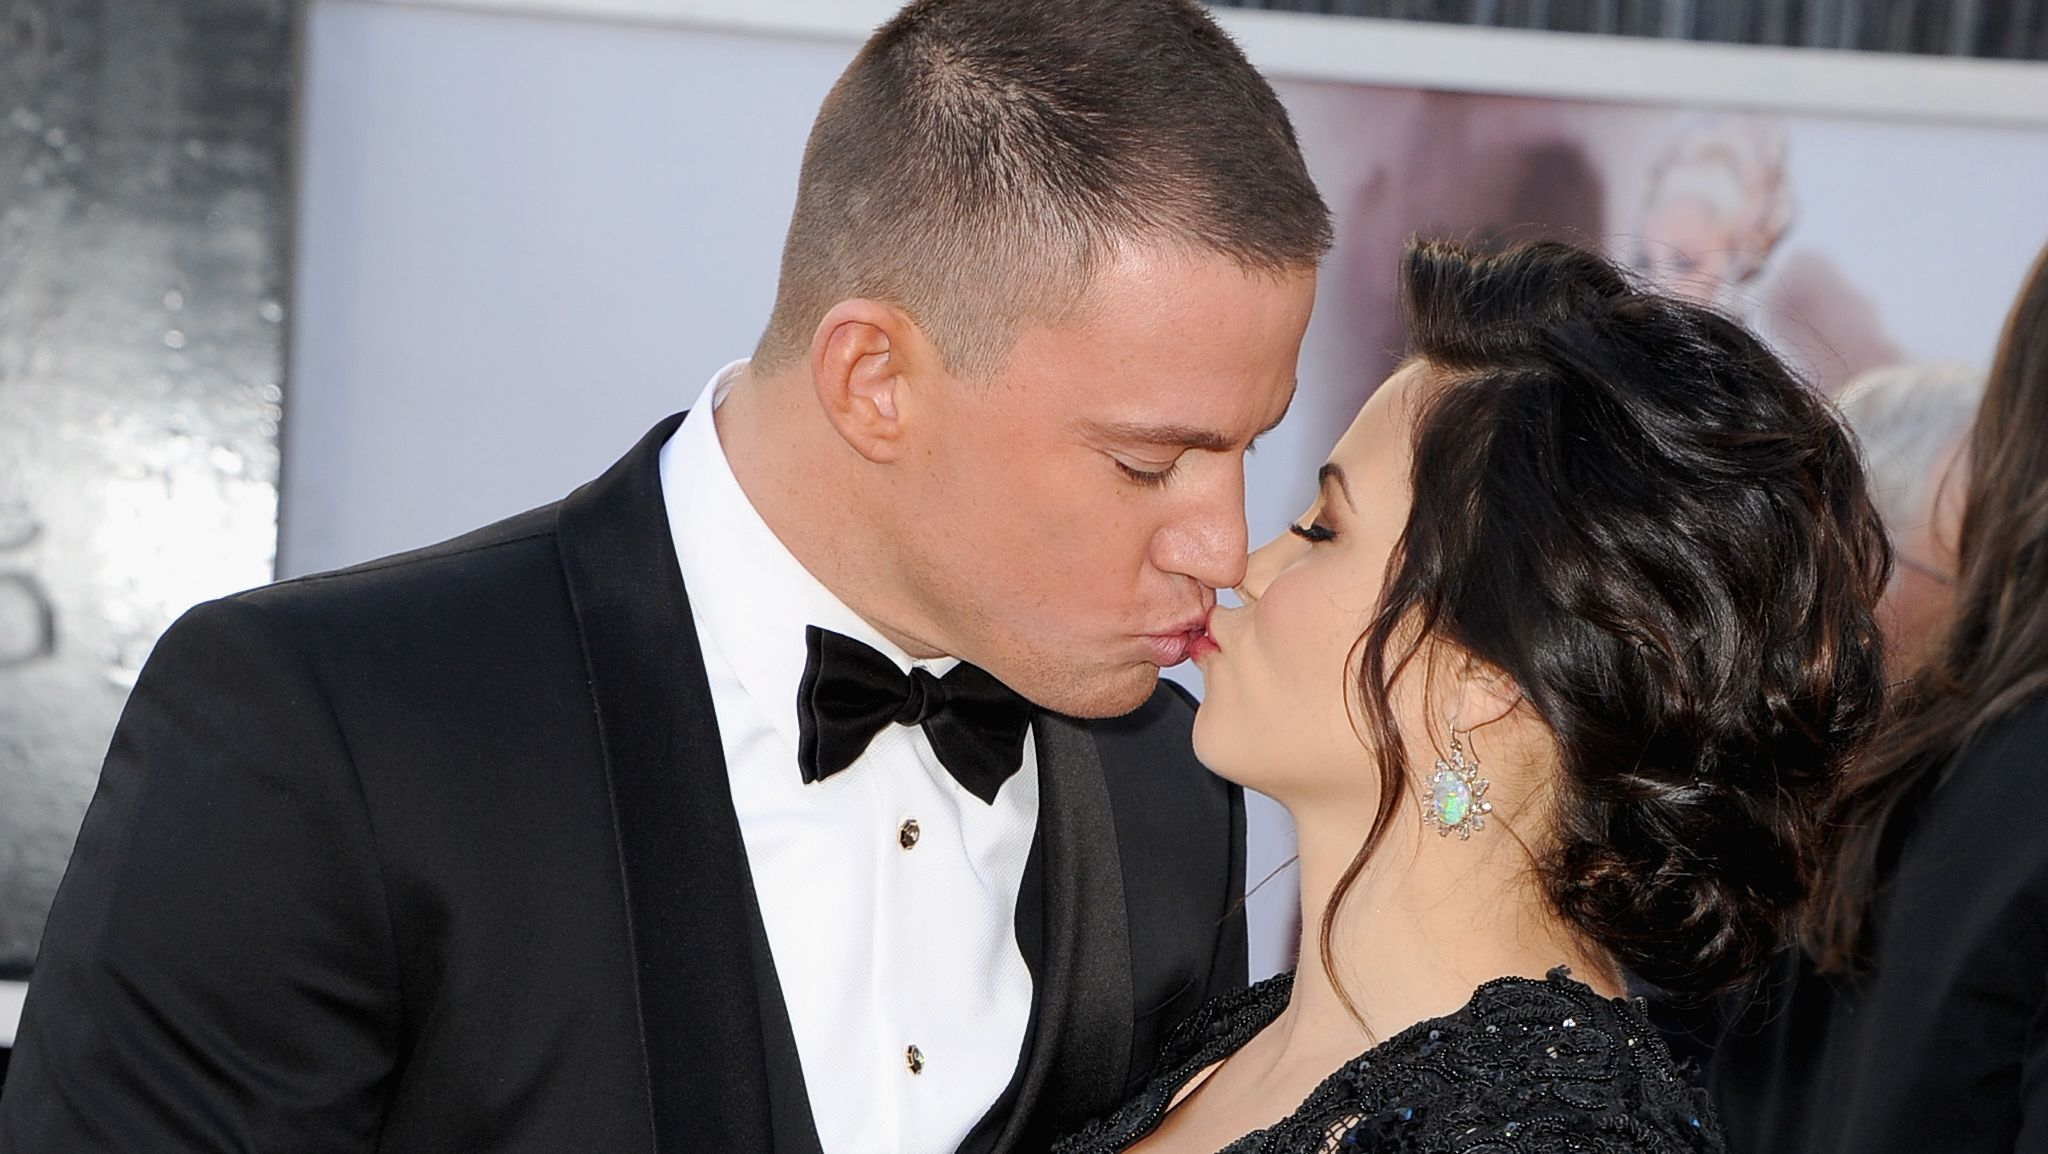 channing divorced singles Channing tatum and his wife jenna dewan tatum are not headed for divorce despite a cover story in star magazine, reps for the couple tell us weekly.